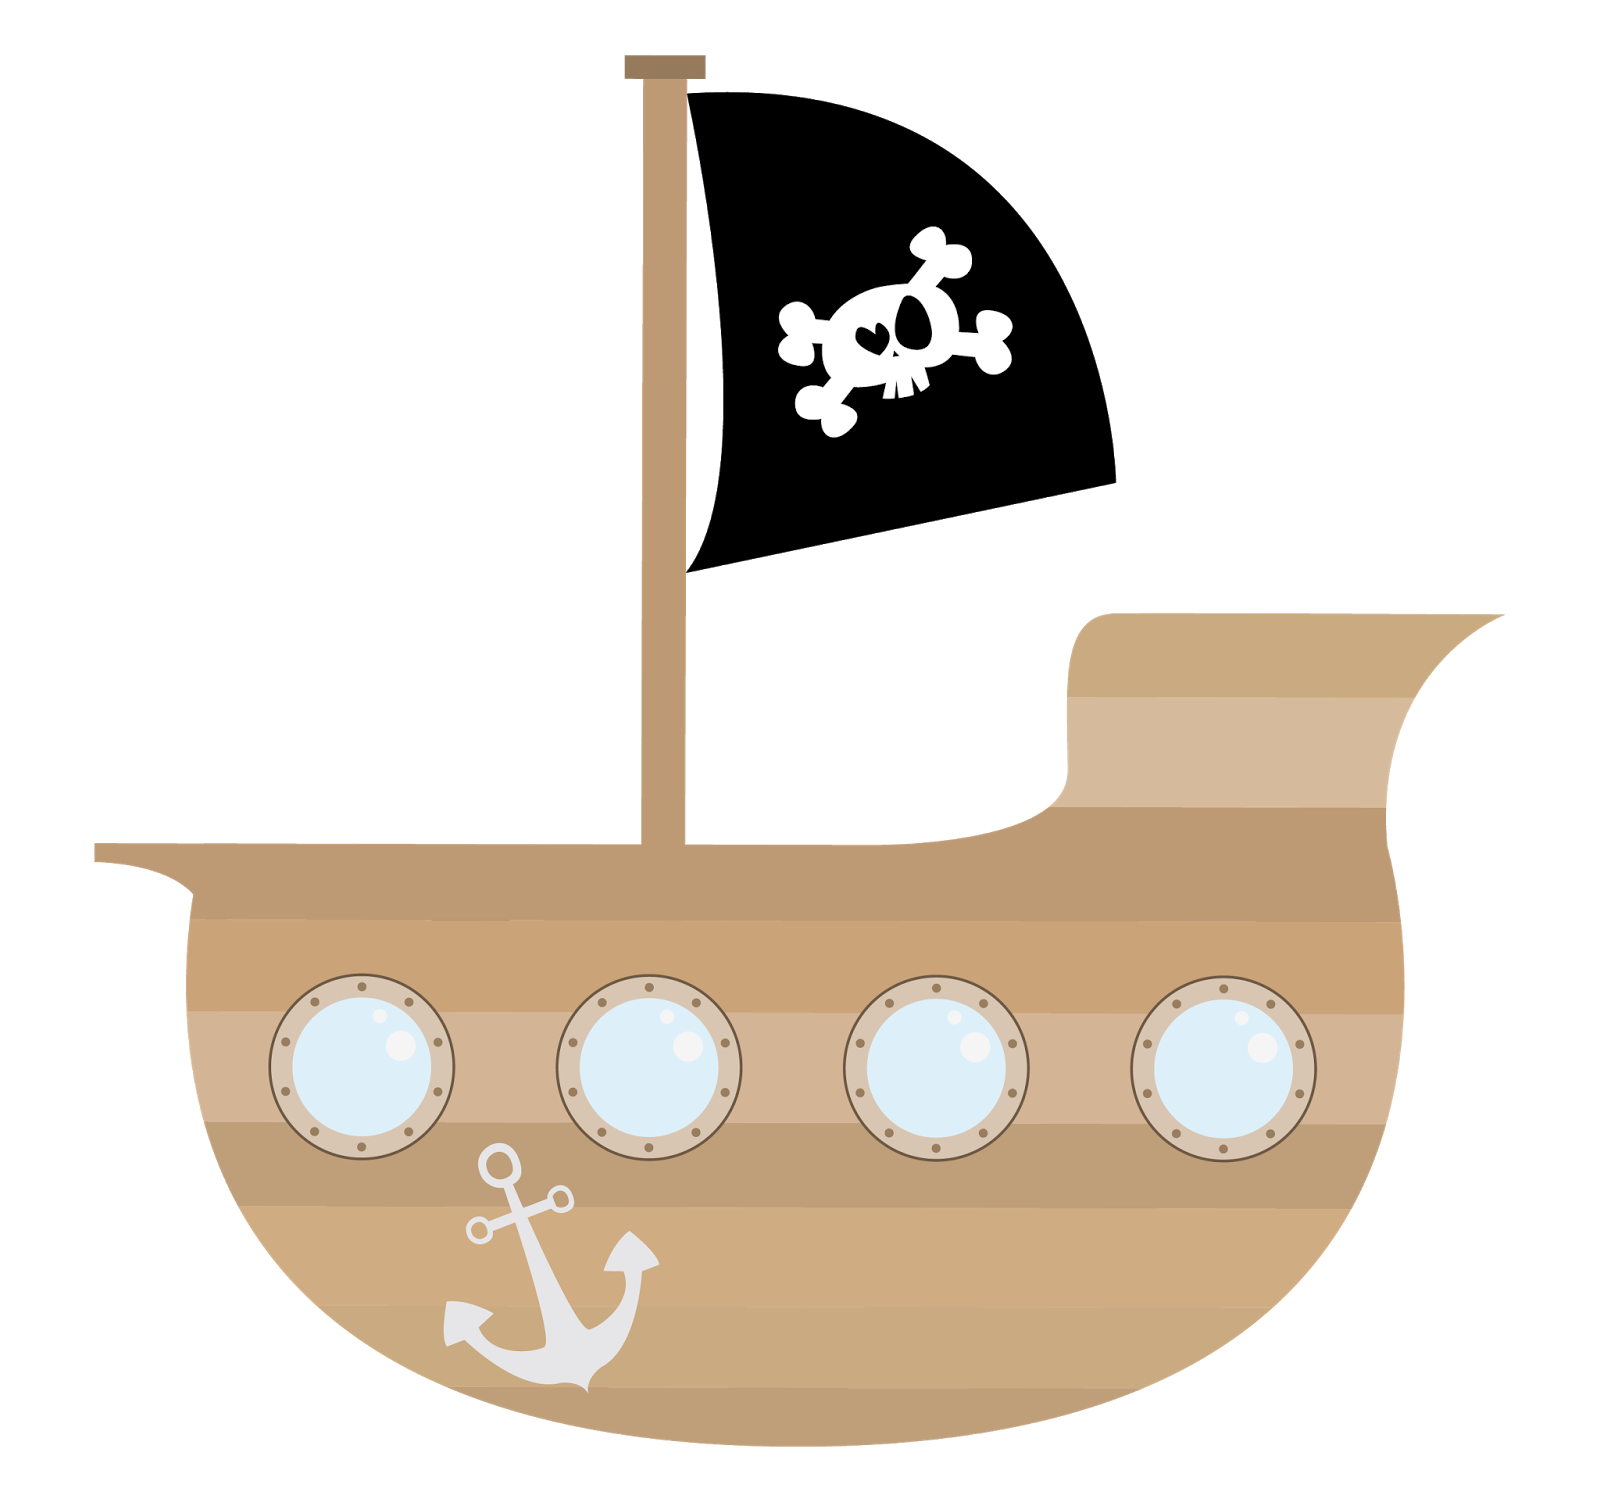 Pirate ship story pinterest. Waves clipart kid